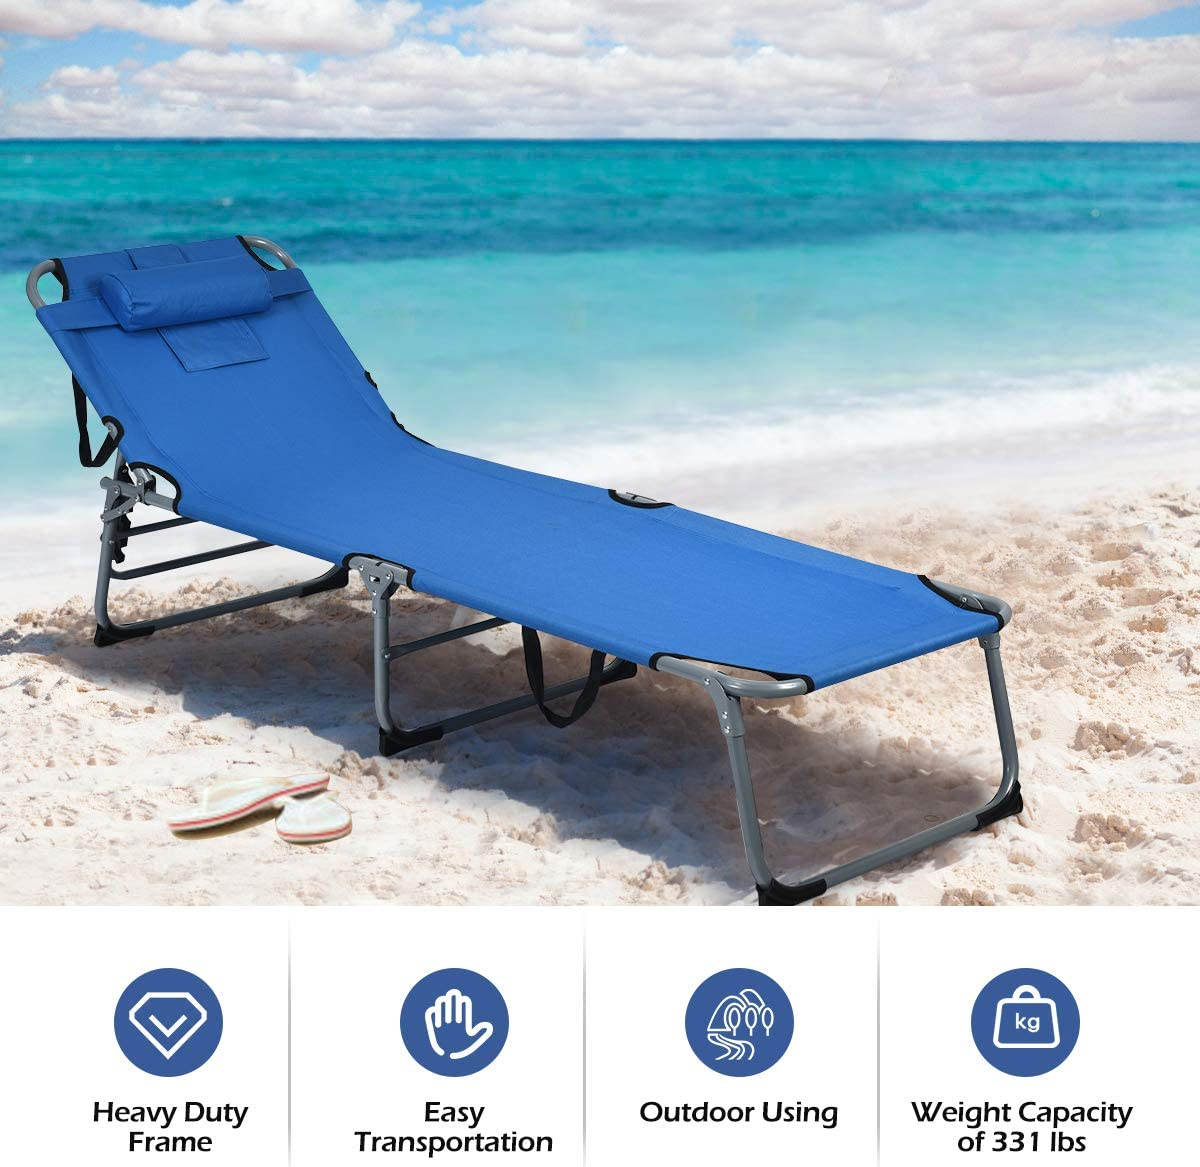 GYMAX Beach Chaise Lounge Blue Portable Folding Cot for Beach Patio Backyard Adjustabel Folding Sunbathing Recliner with Face Hole /& Removable Pillow